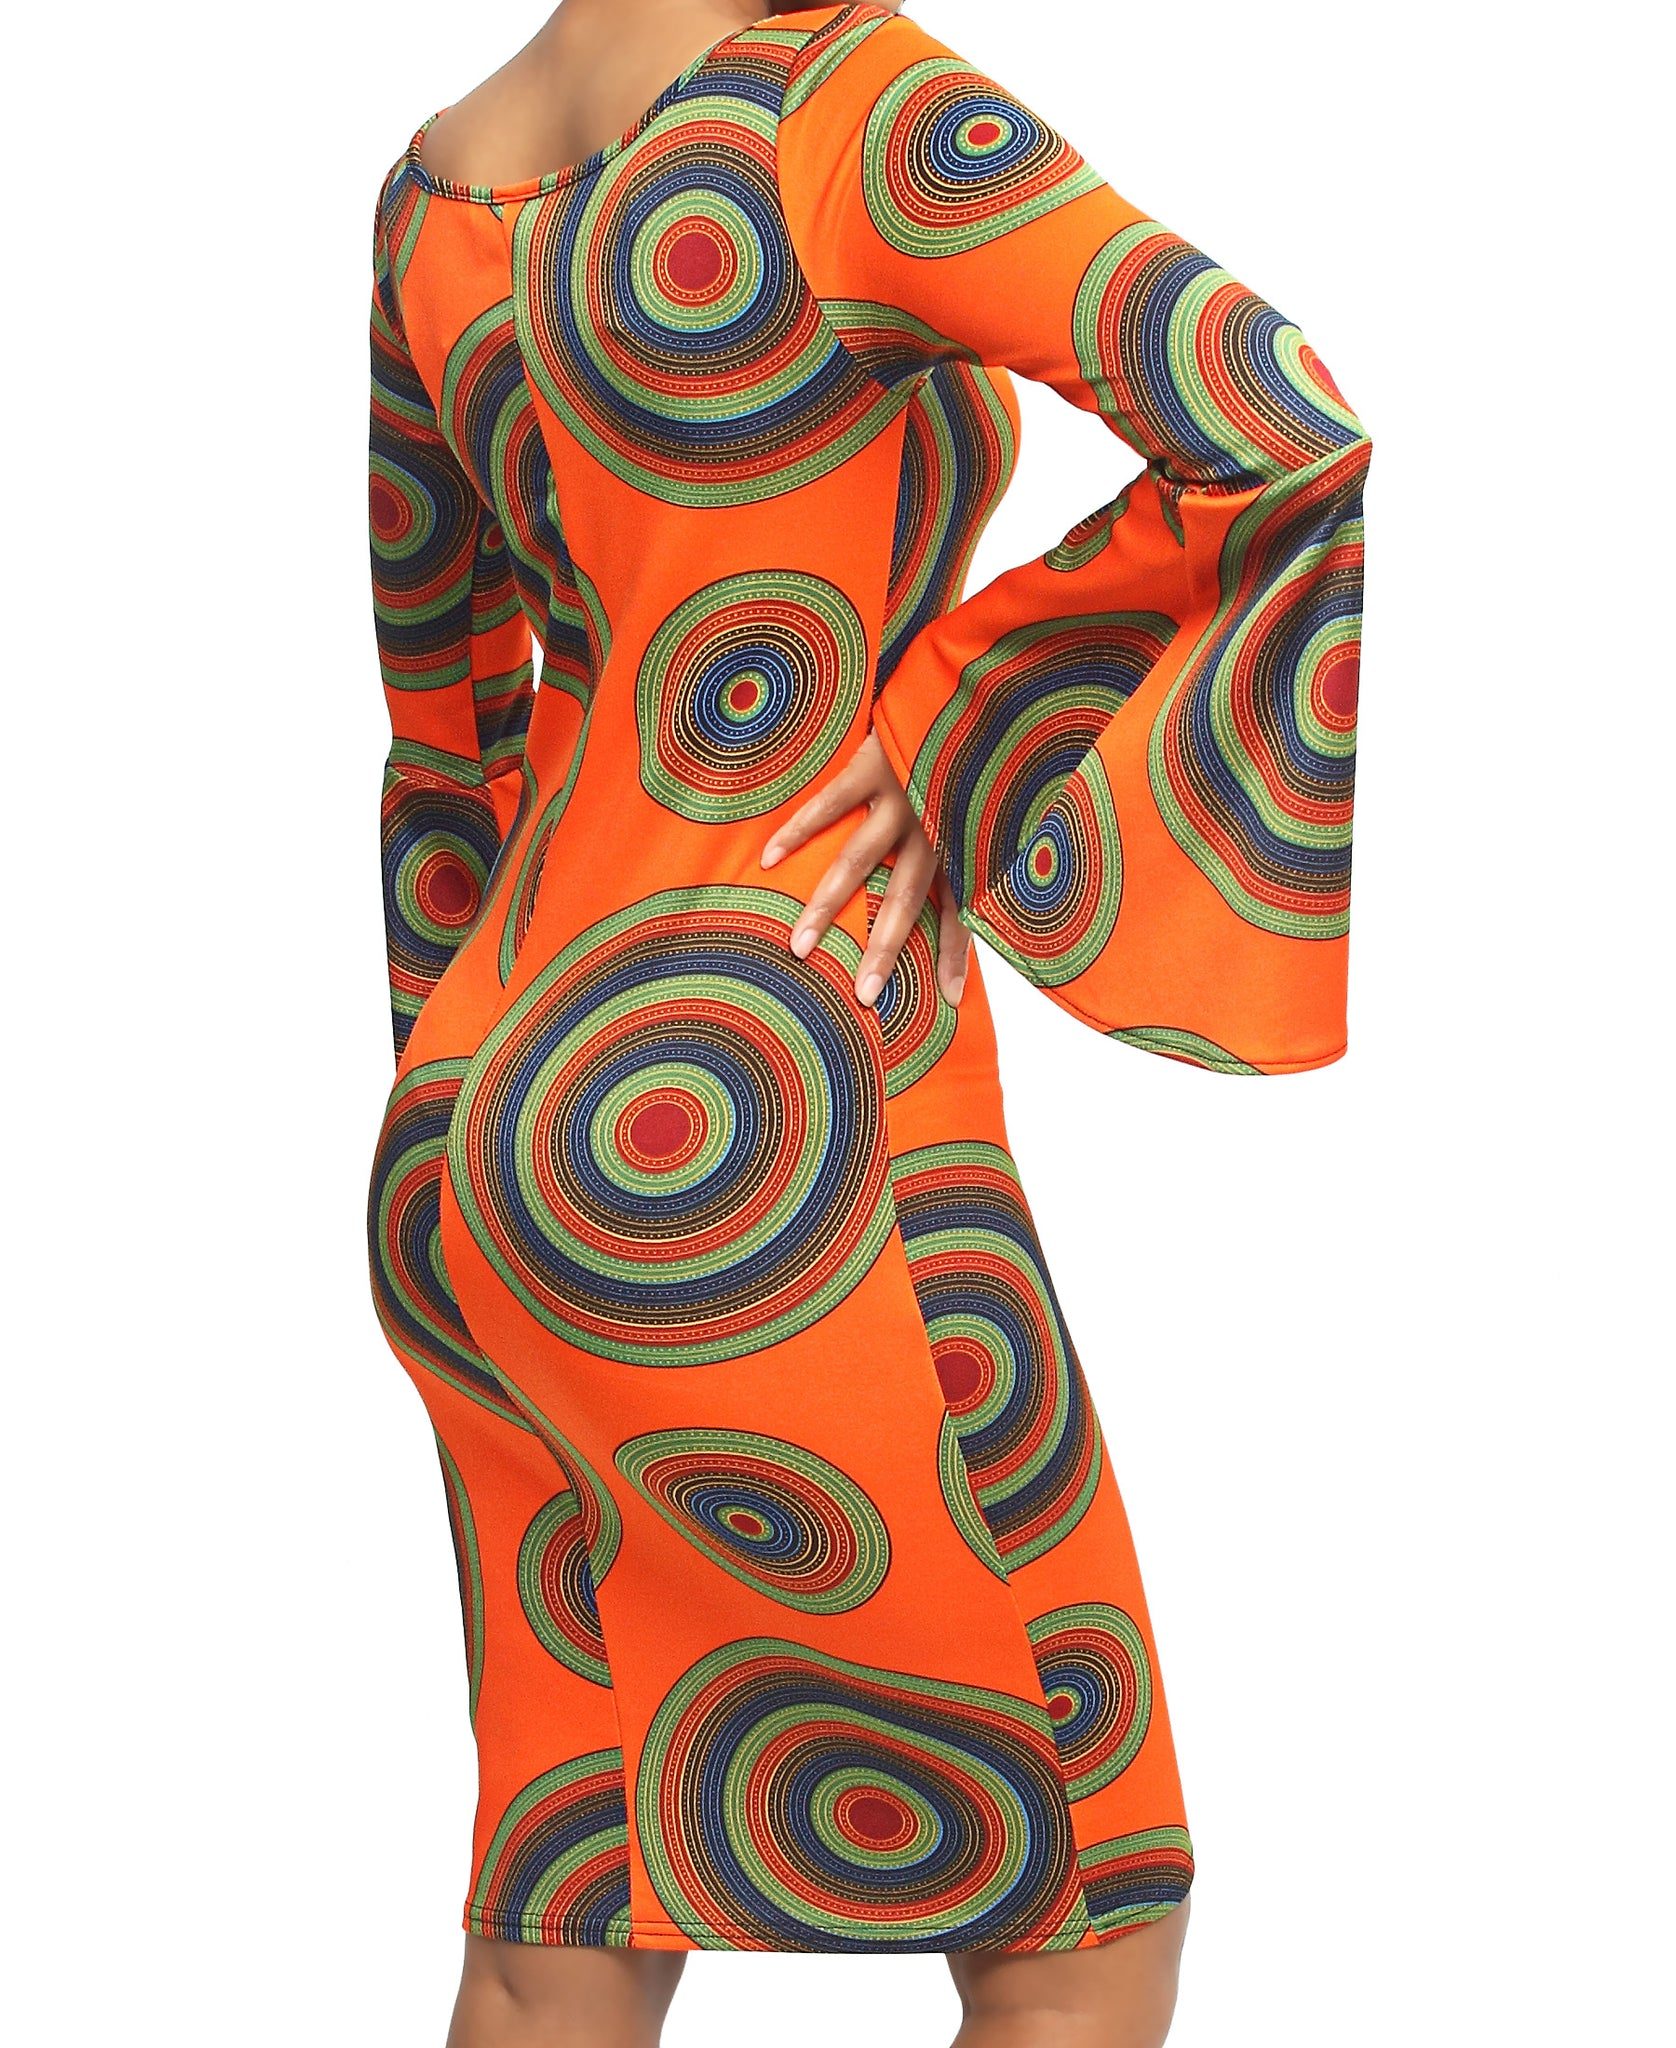 Bell Sleeve Dress - Orange